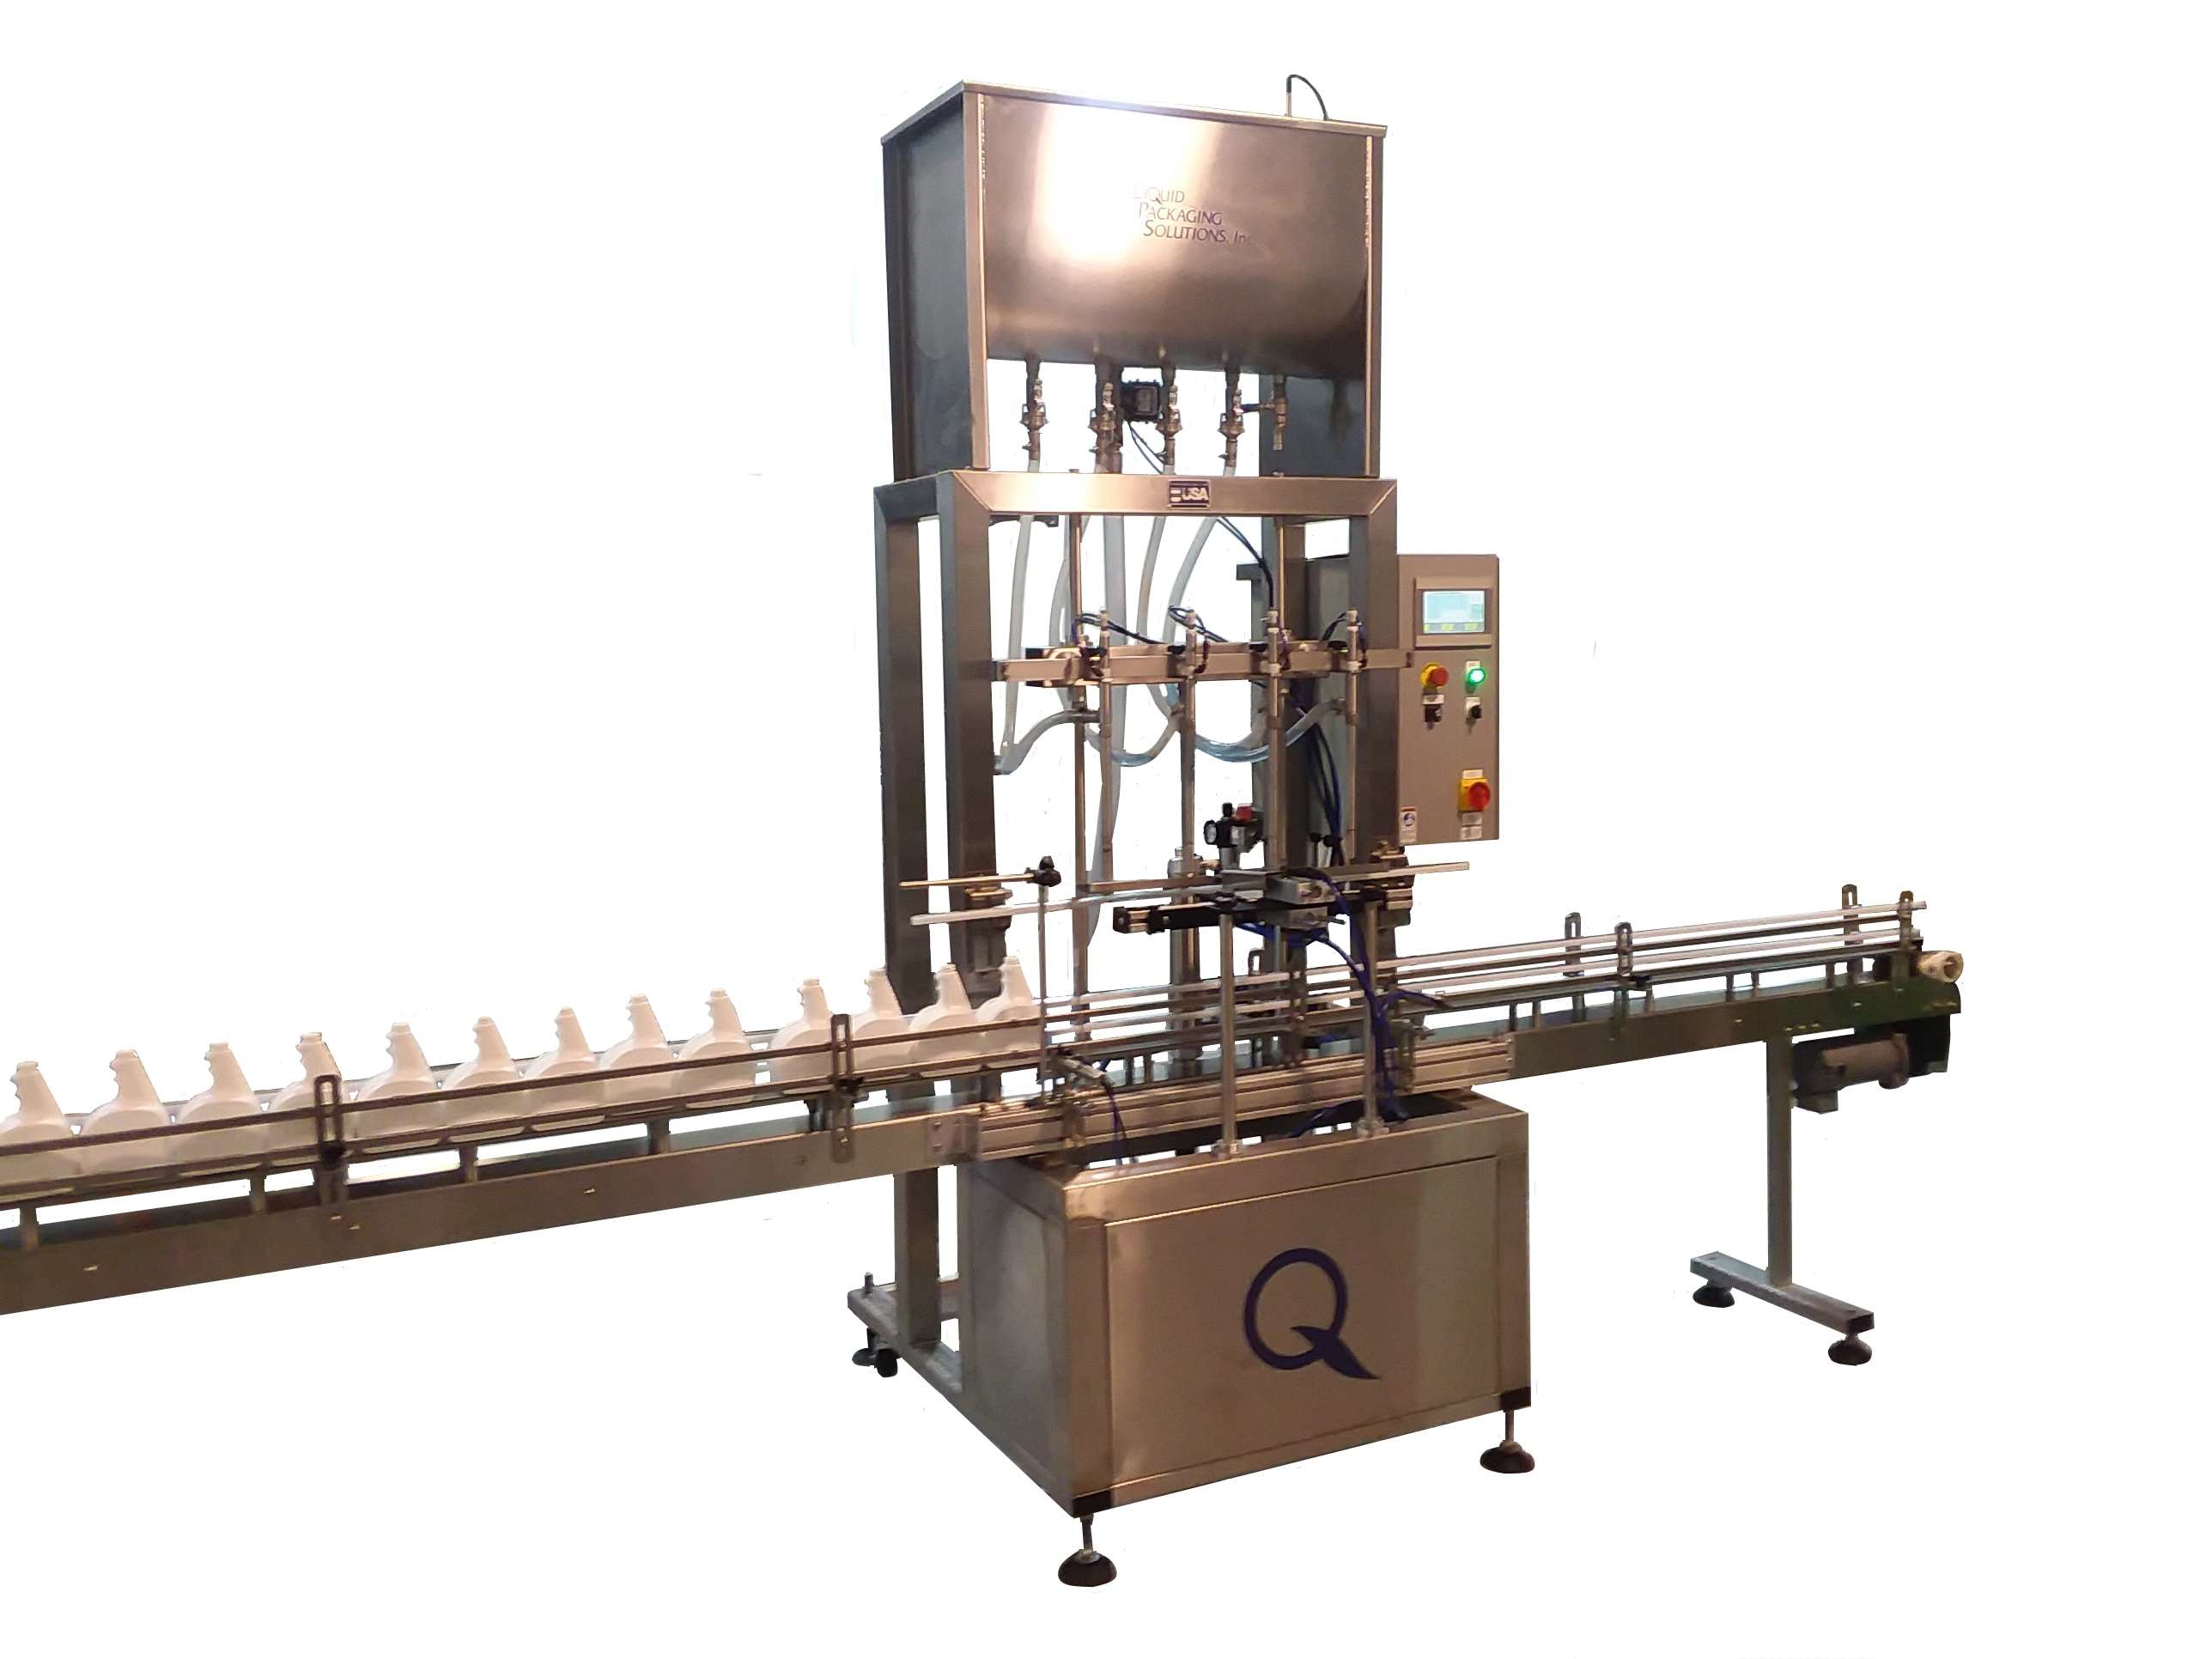 Automatic Filling Machine Gravity Filler By Liquid